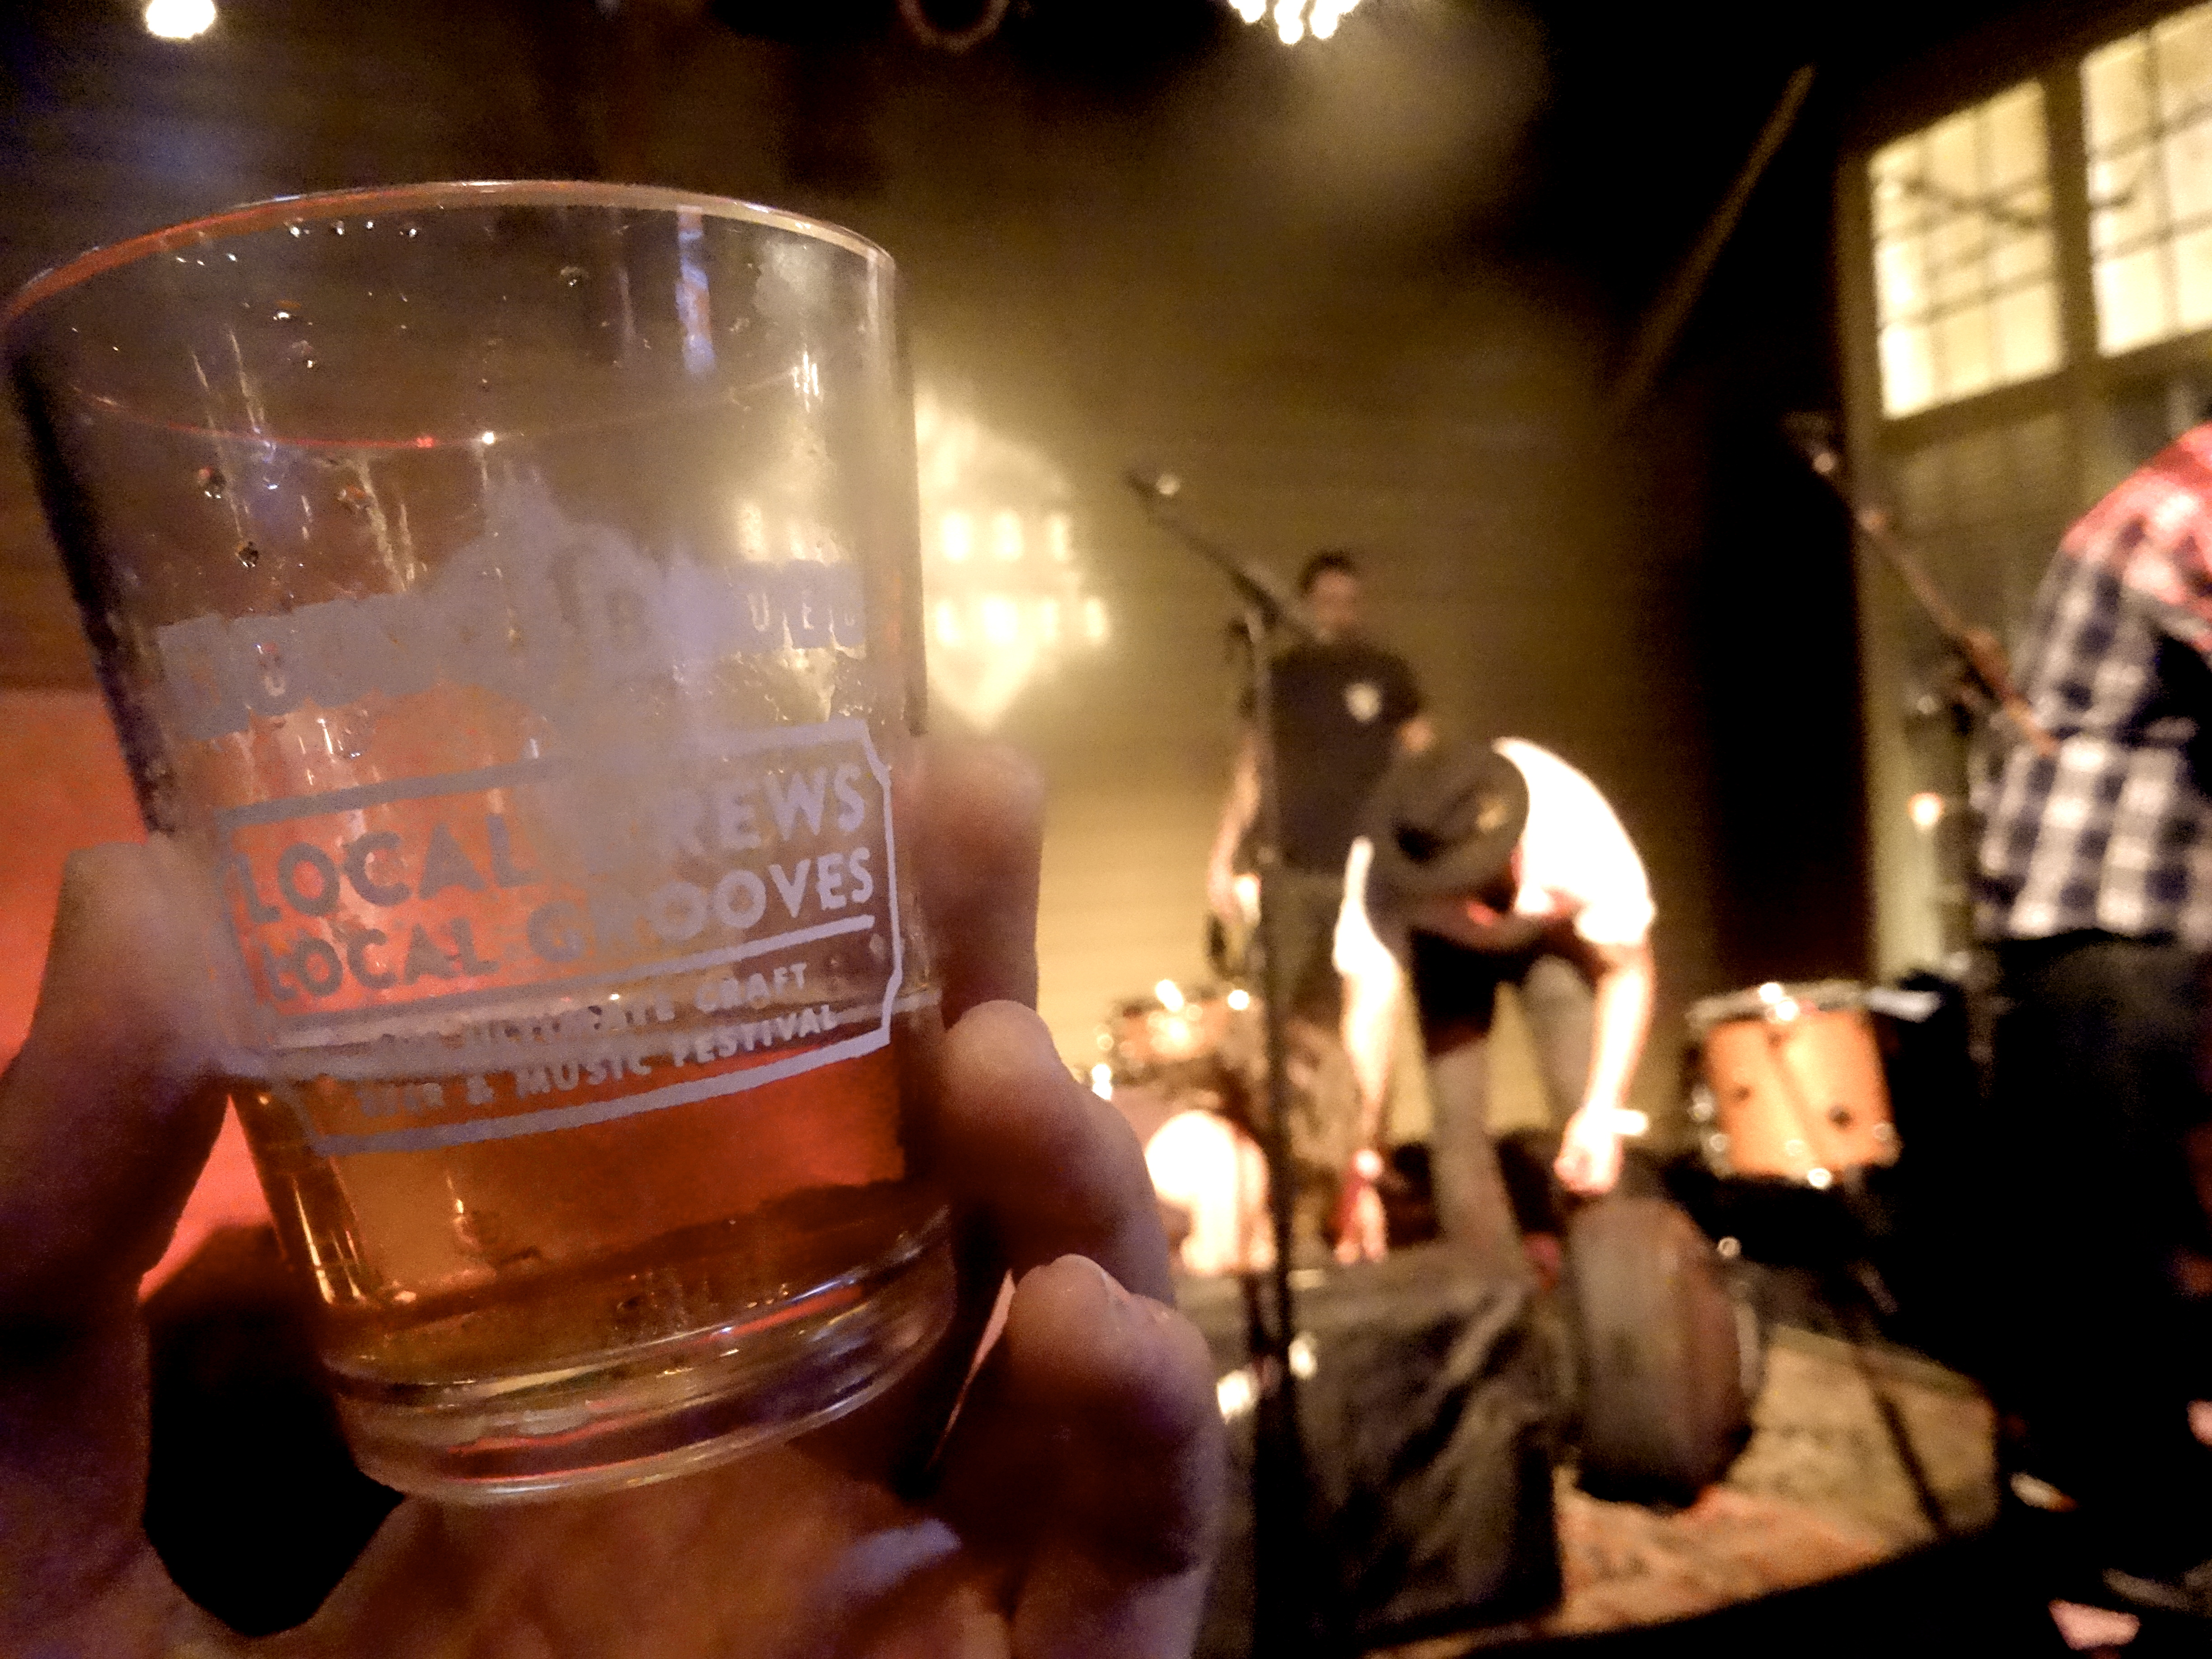 Local brews local grooves craft beer and music festival for Local house music